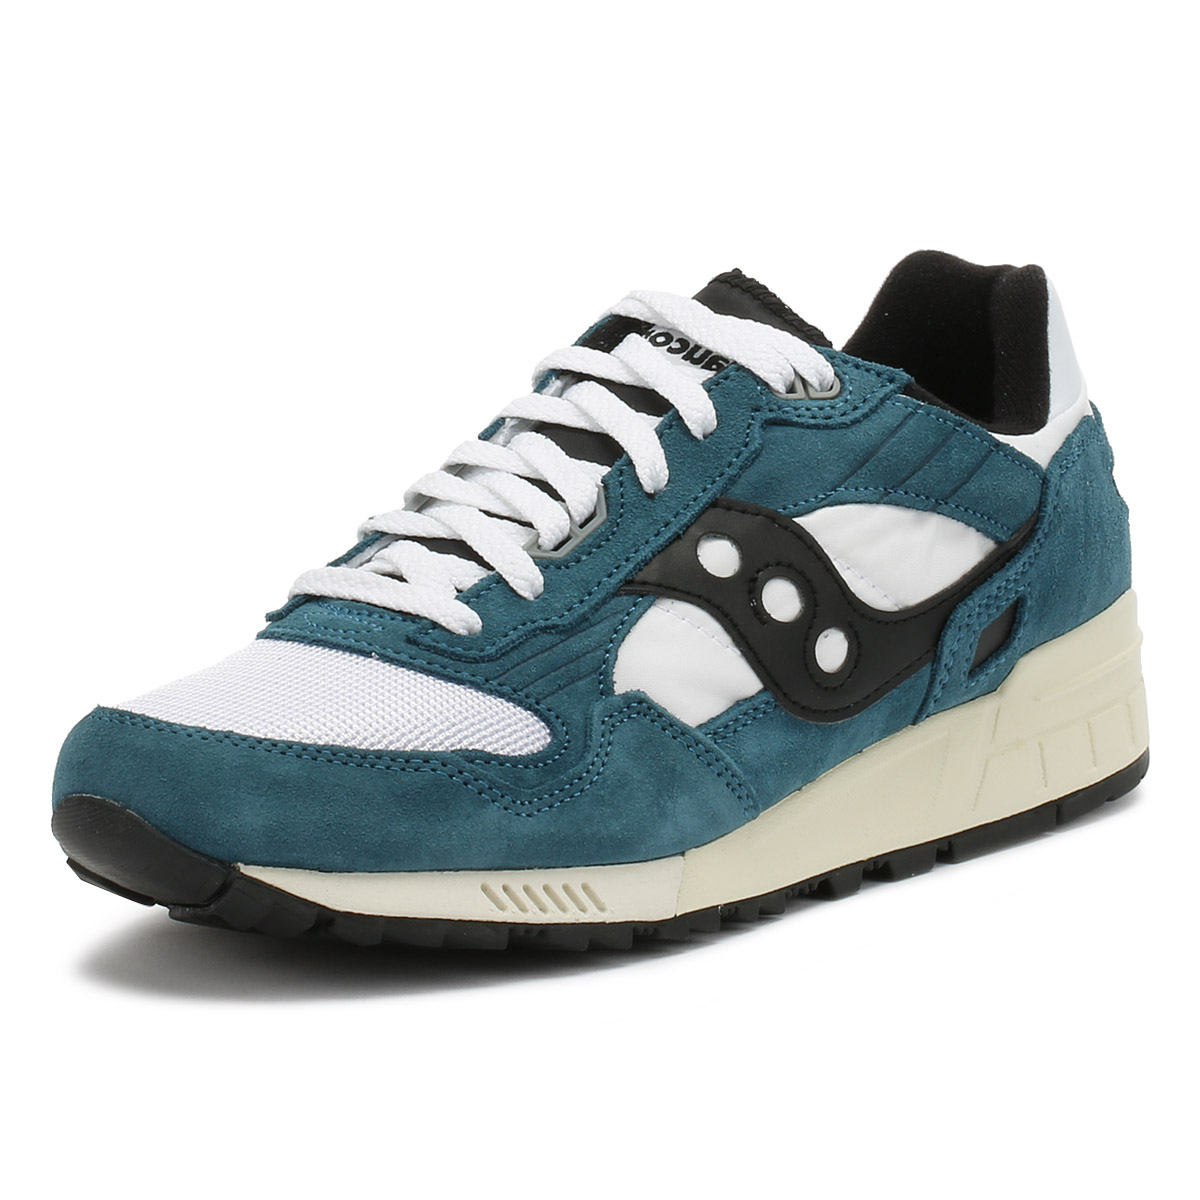 b56ae809aabf Details about Saucony Mens Trainers Teal   White Black Shadow 5000 Vintage  Sport Casual Shoes